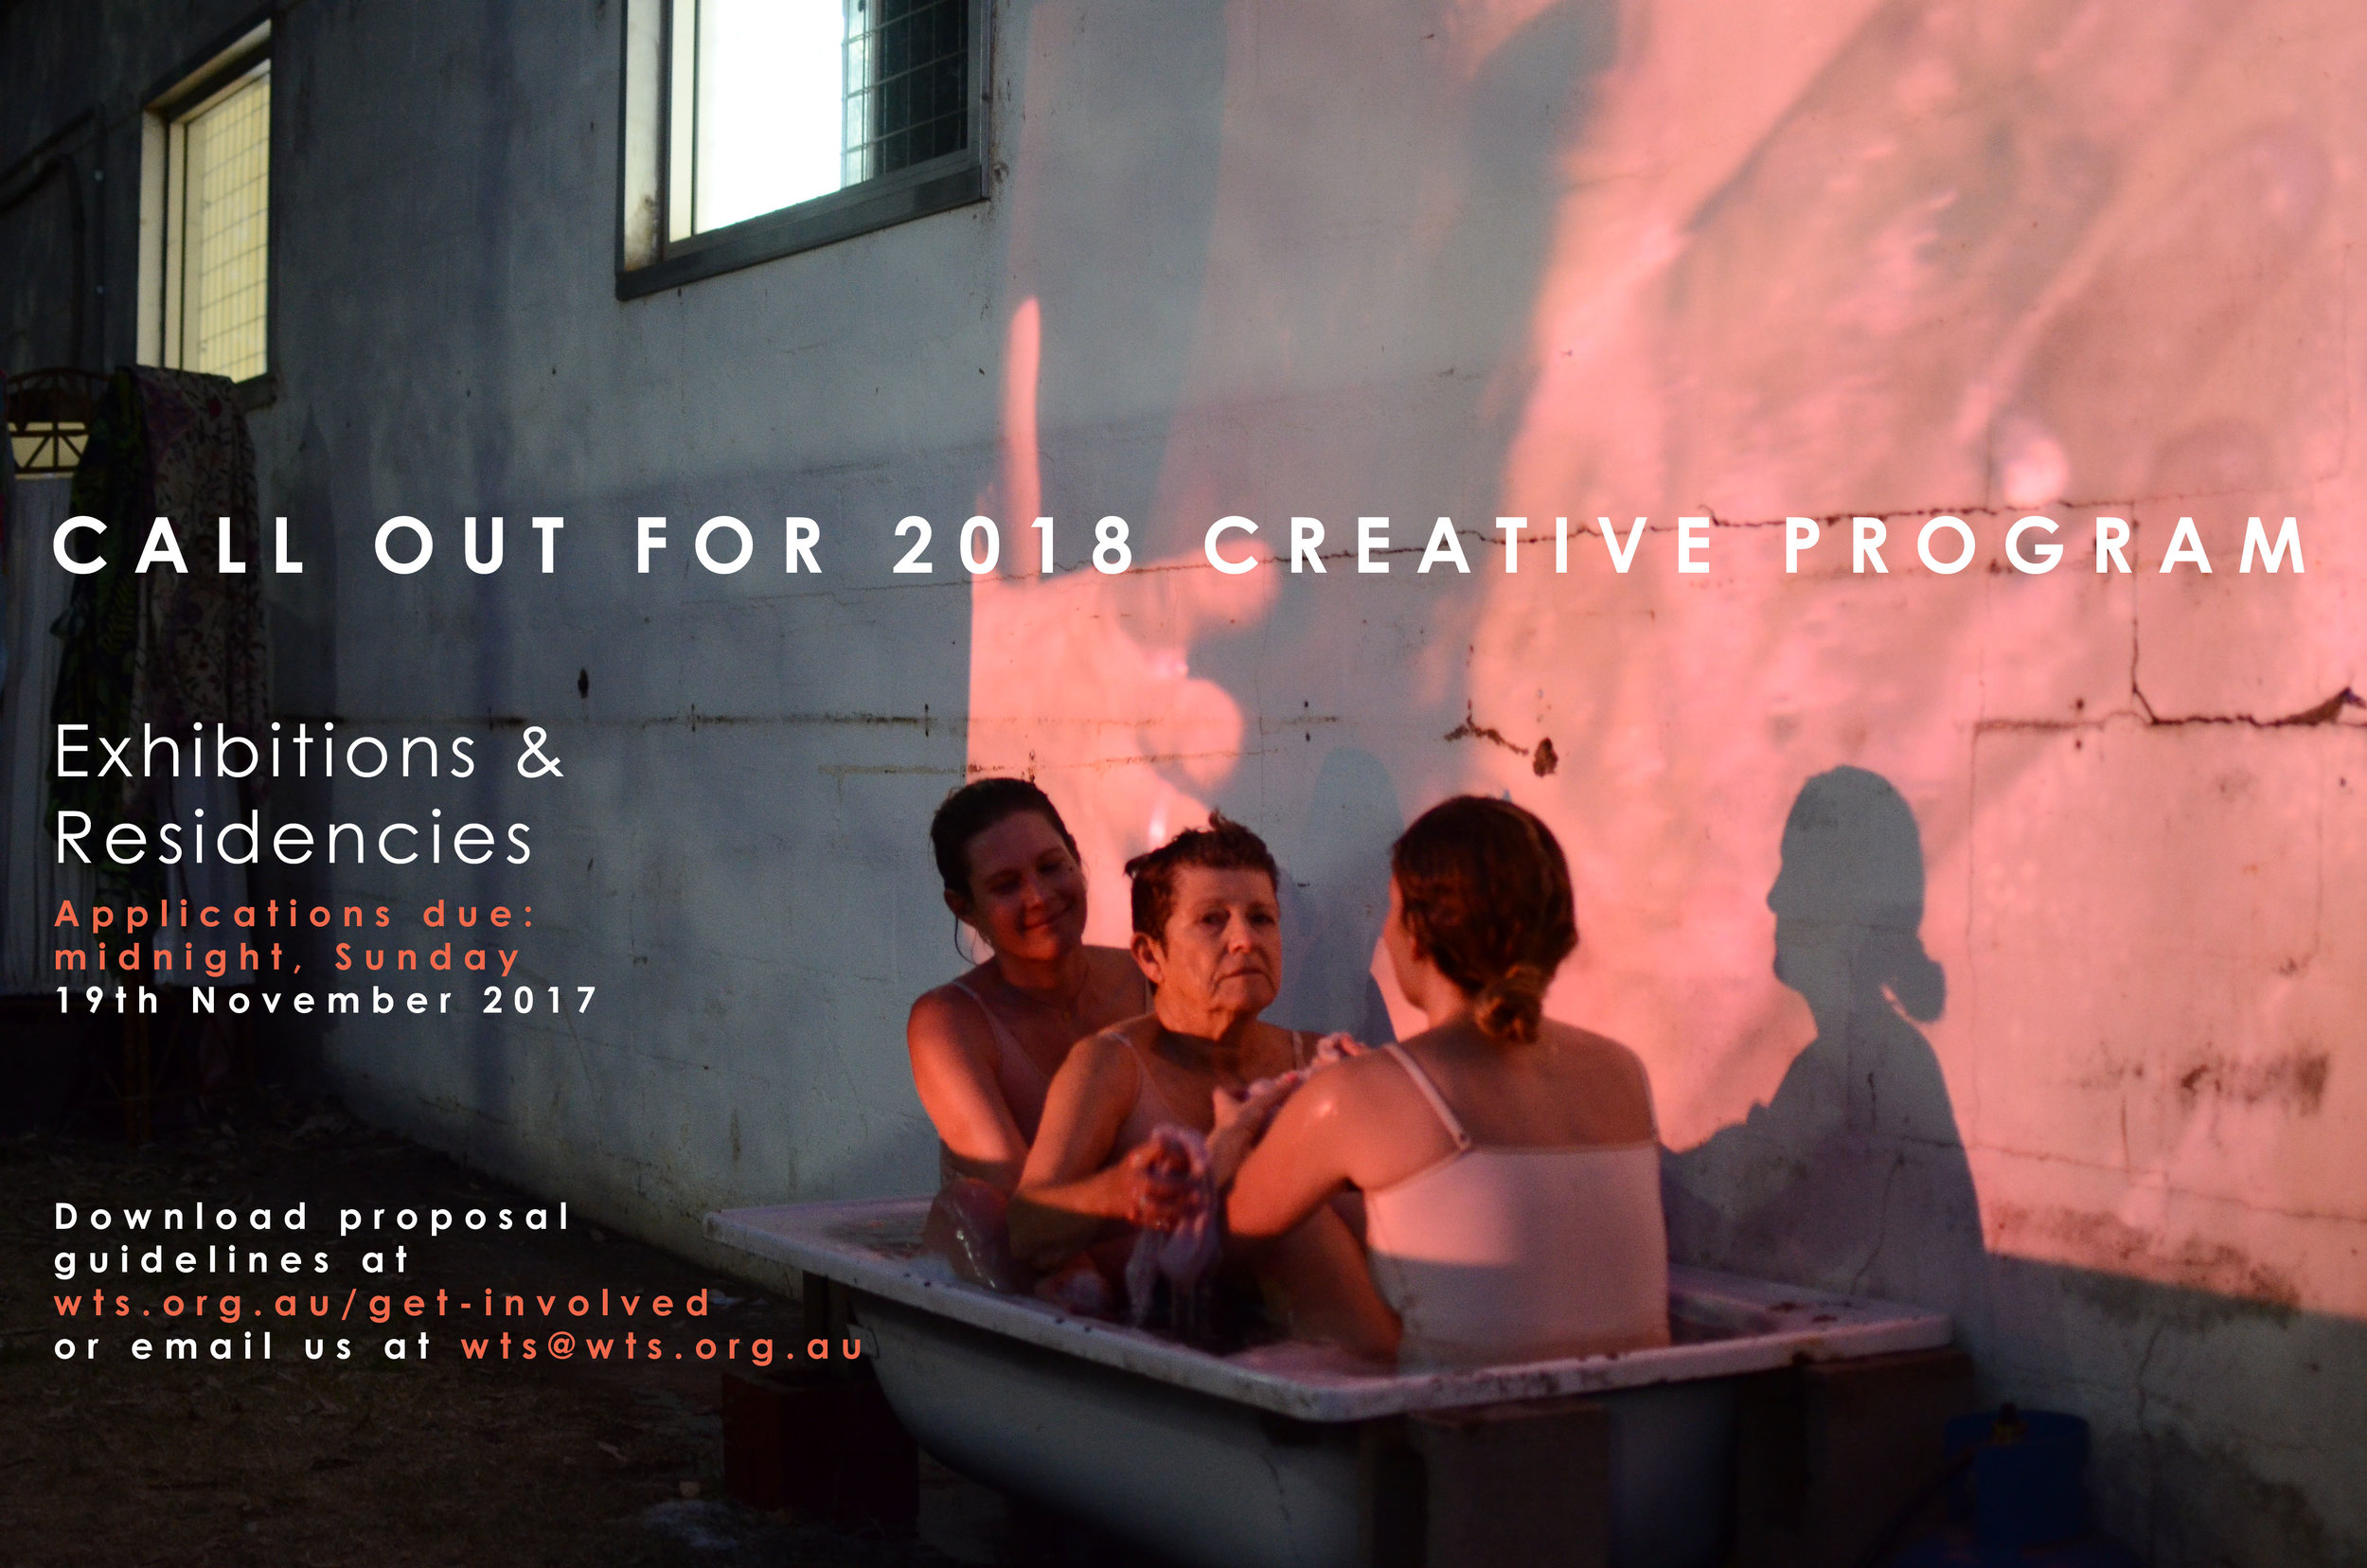 Call Out 2018 Creative Program.jpg